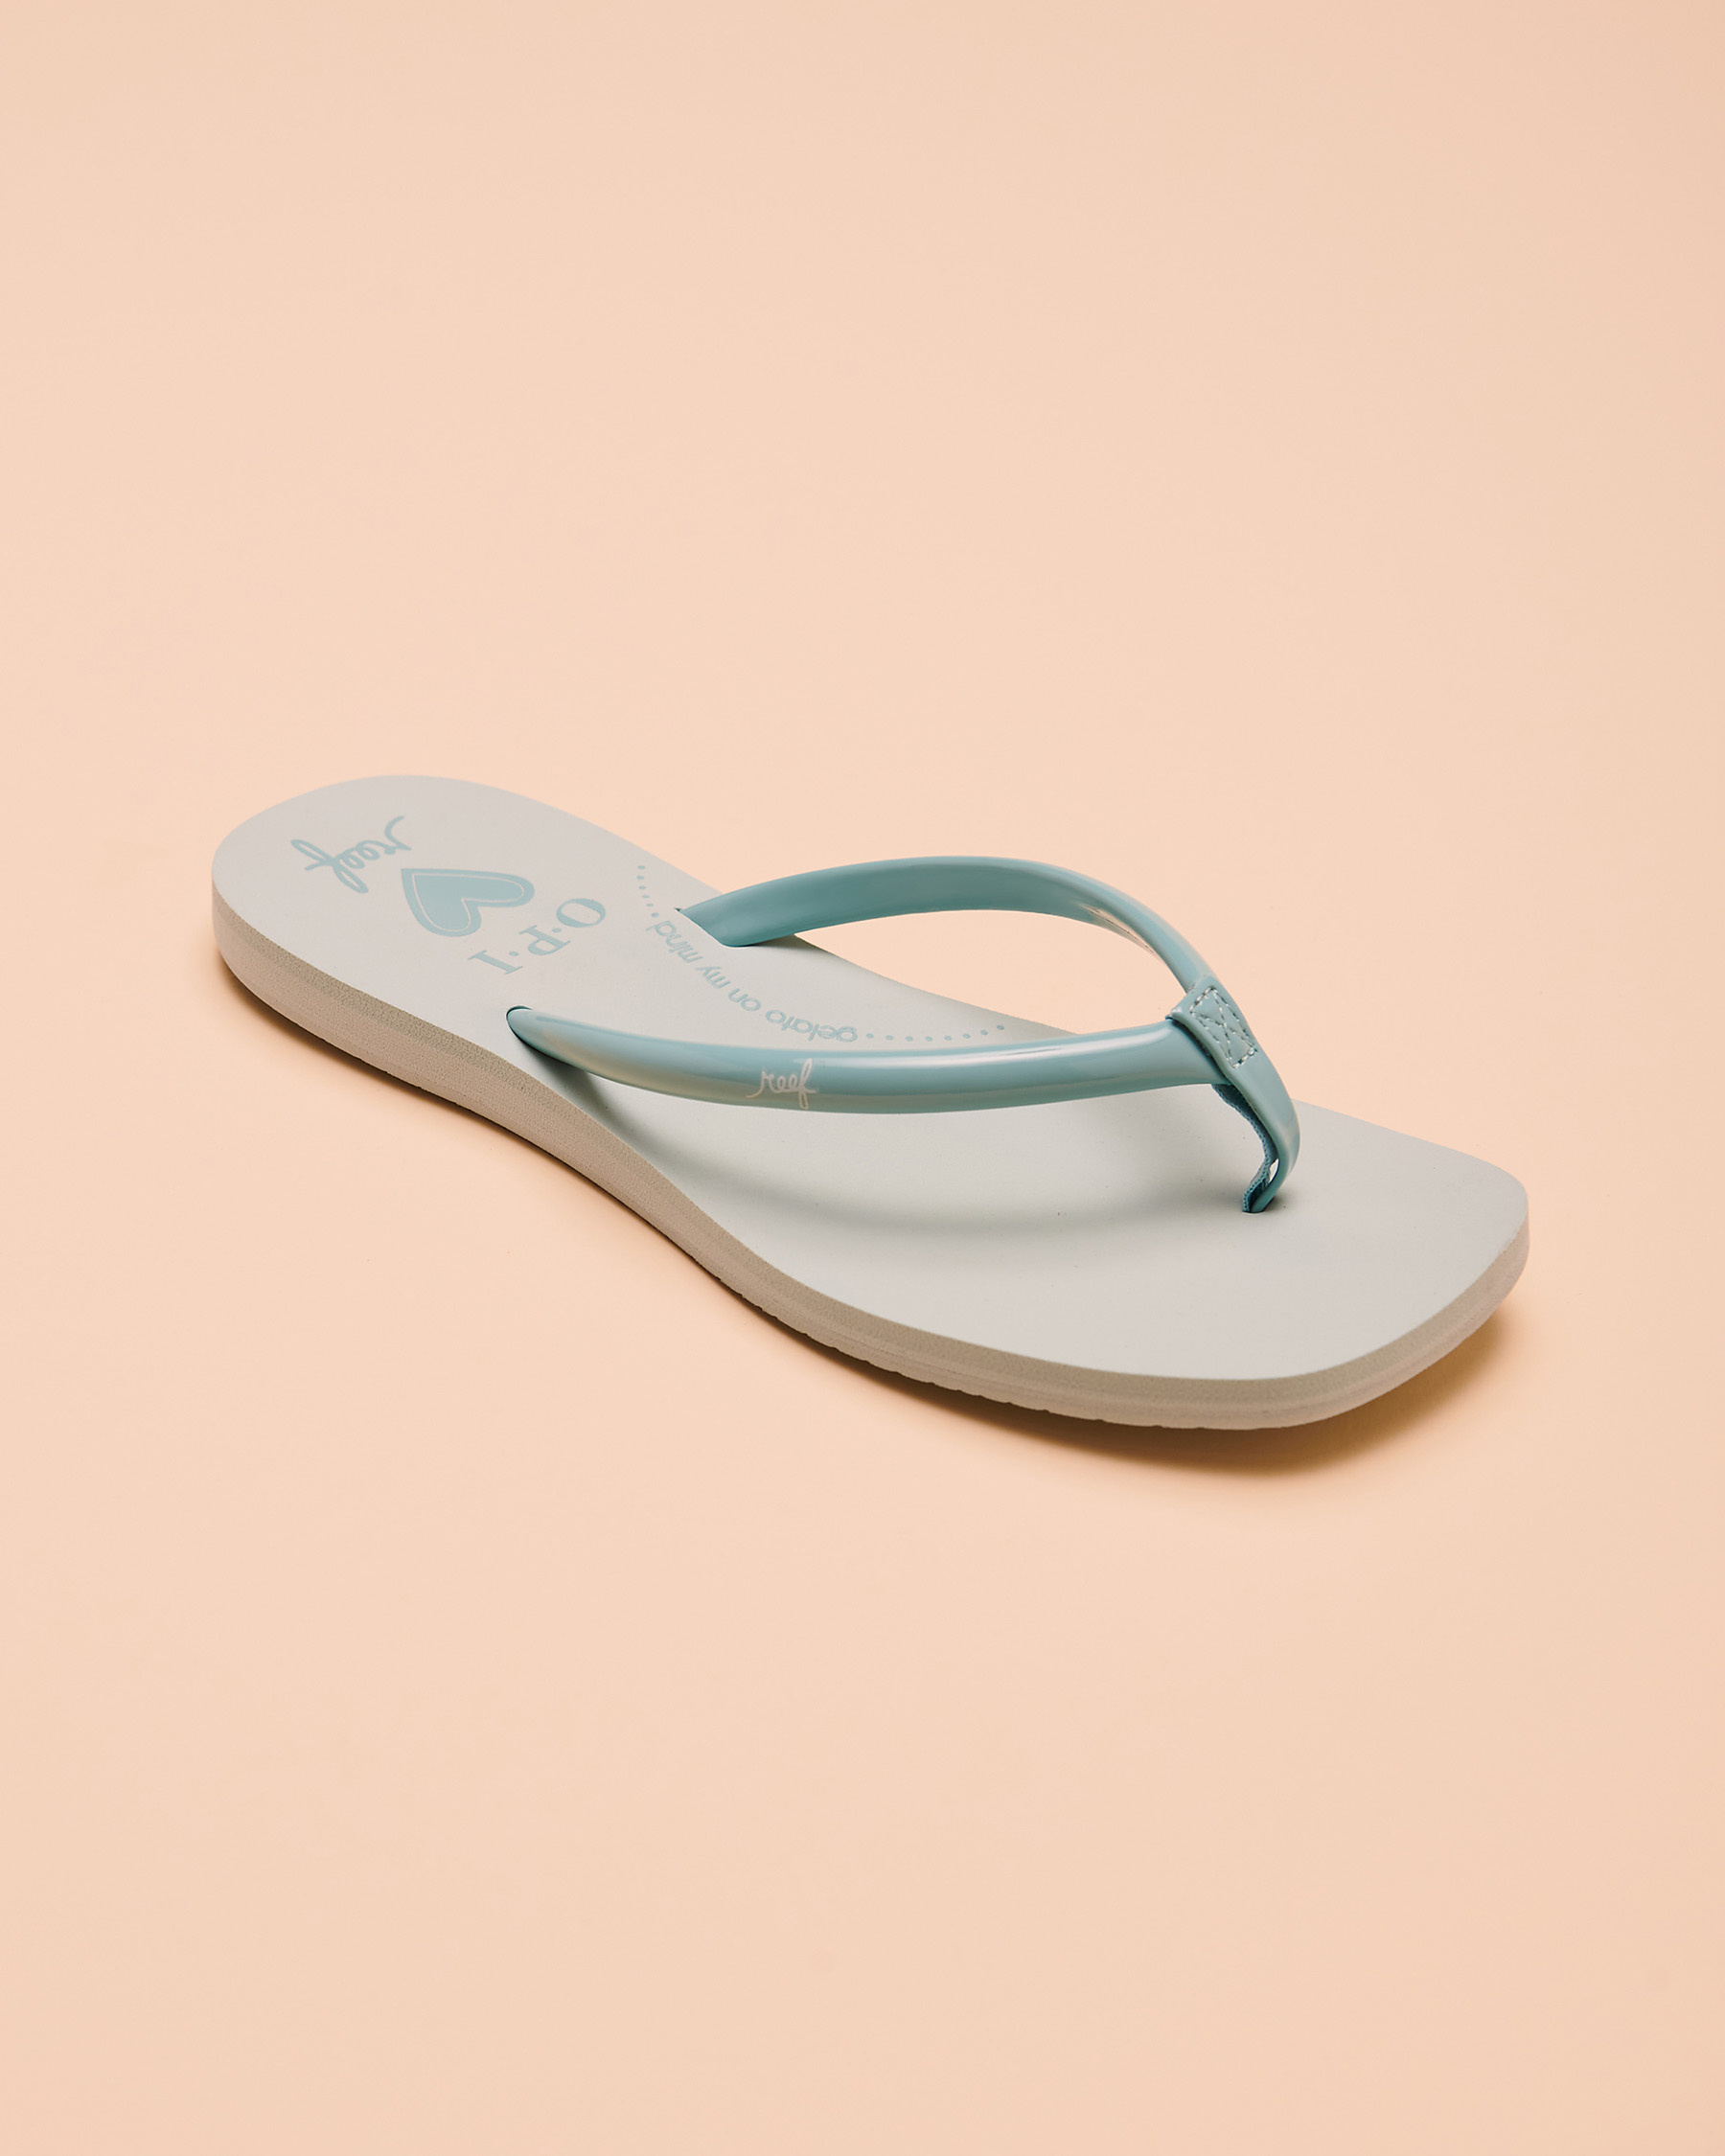 REEF SEAS X OPI Sandals Baby blue CI4873 - View1